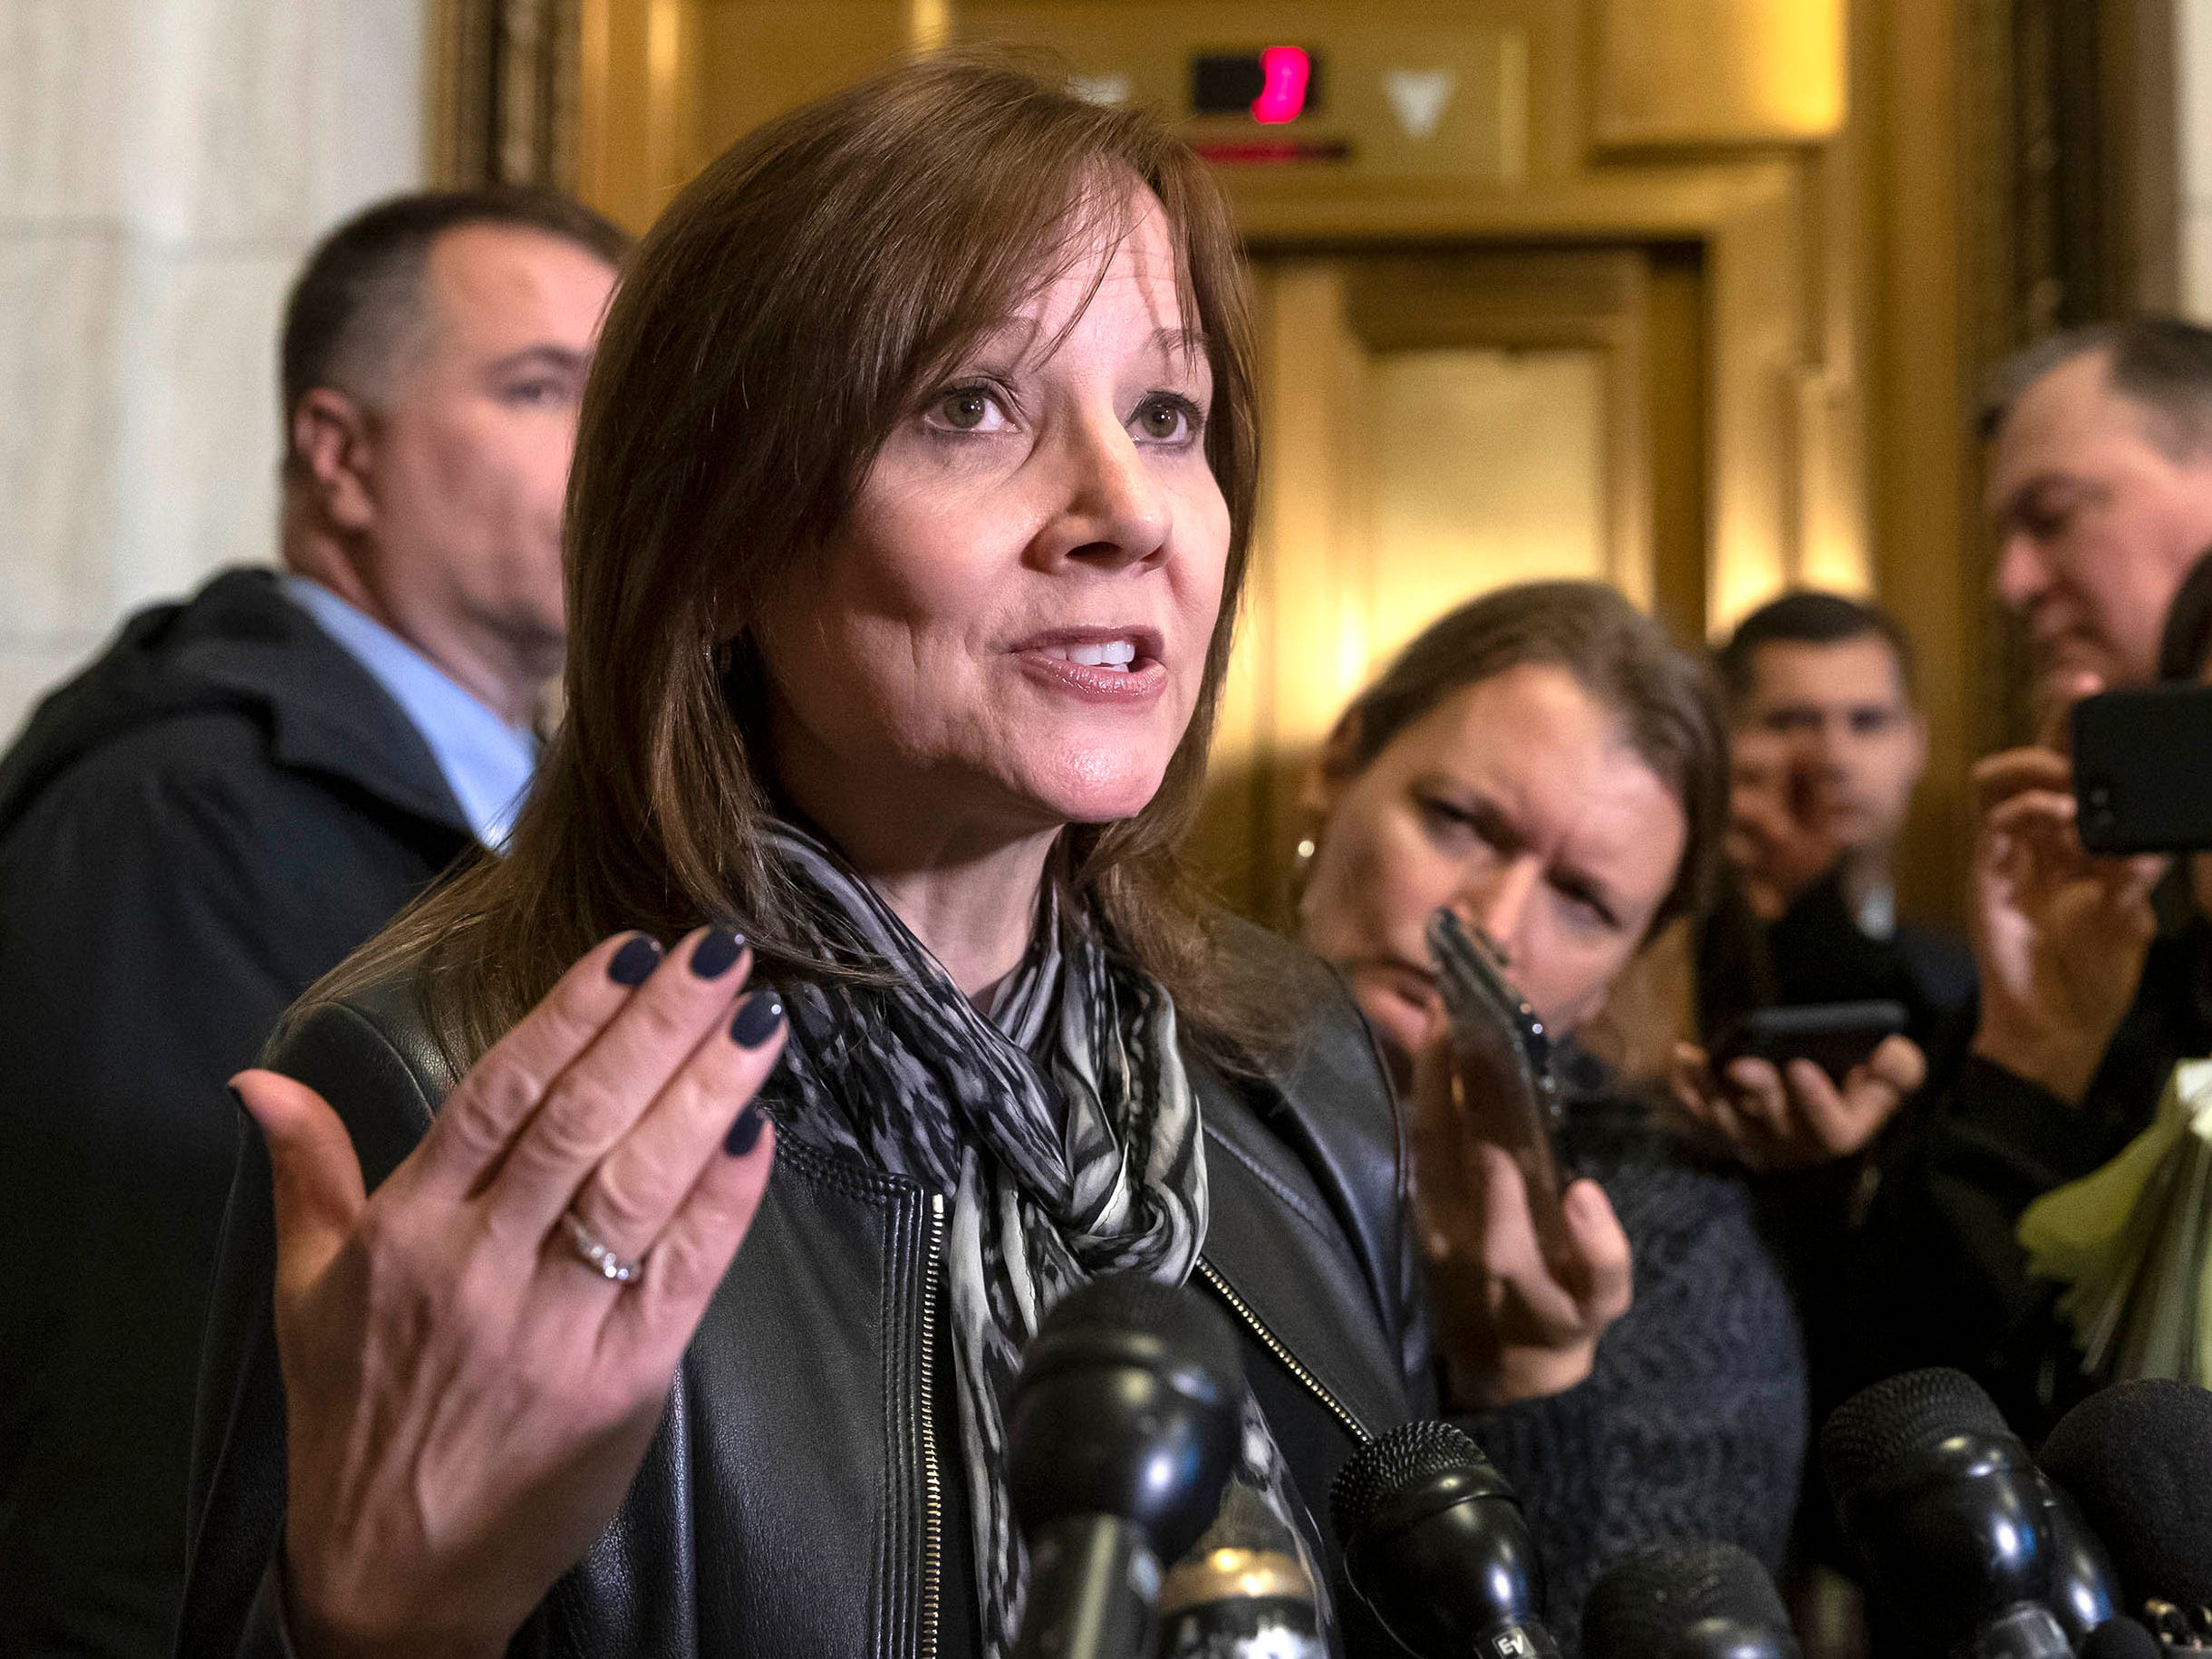 GM fights government to retain electric car tax credit